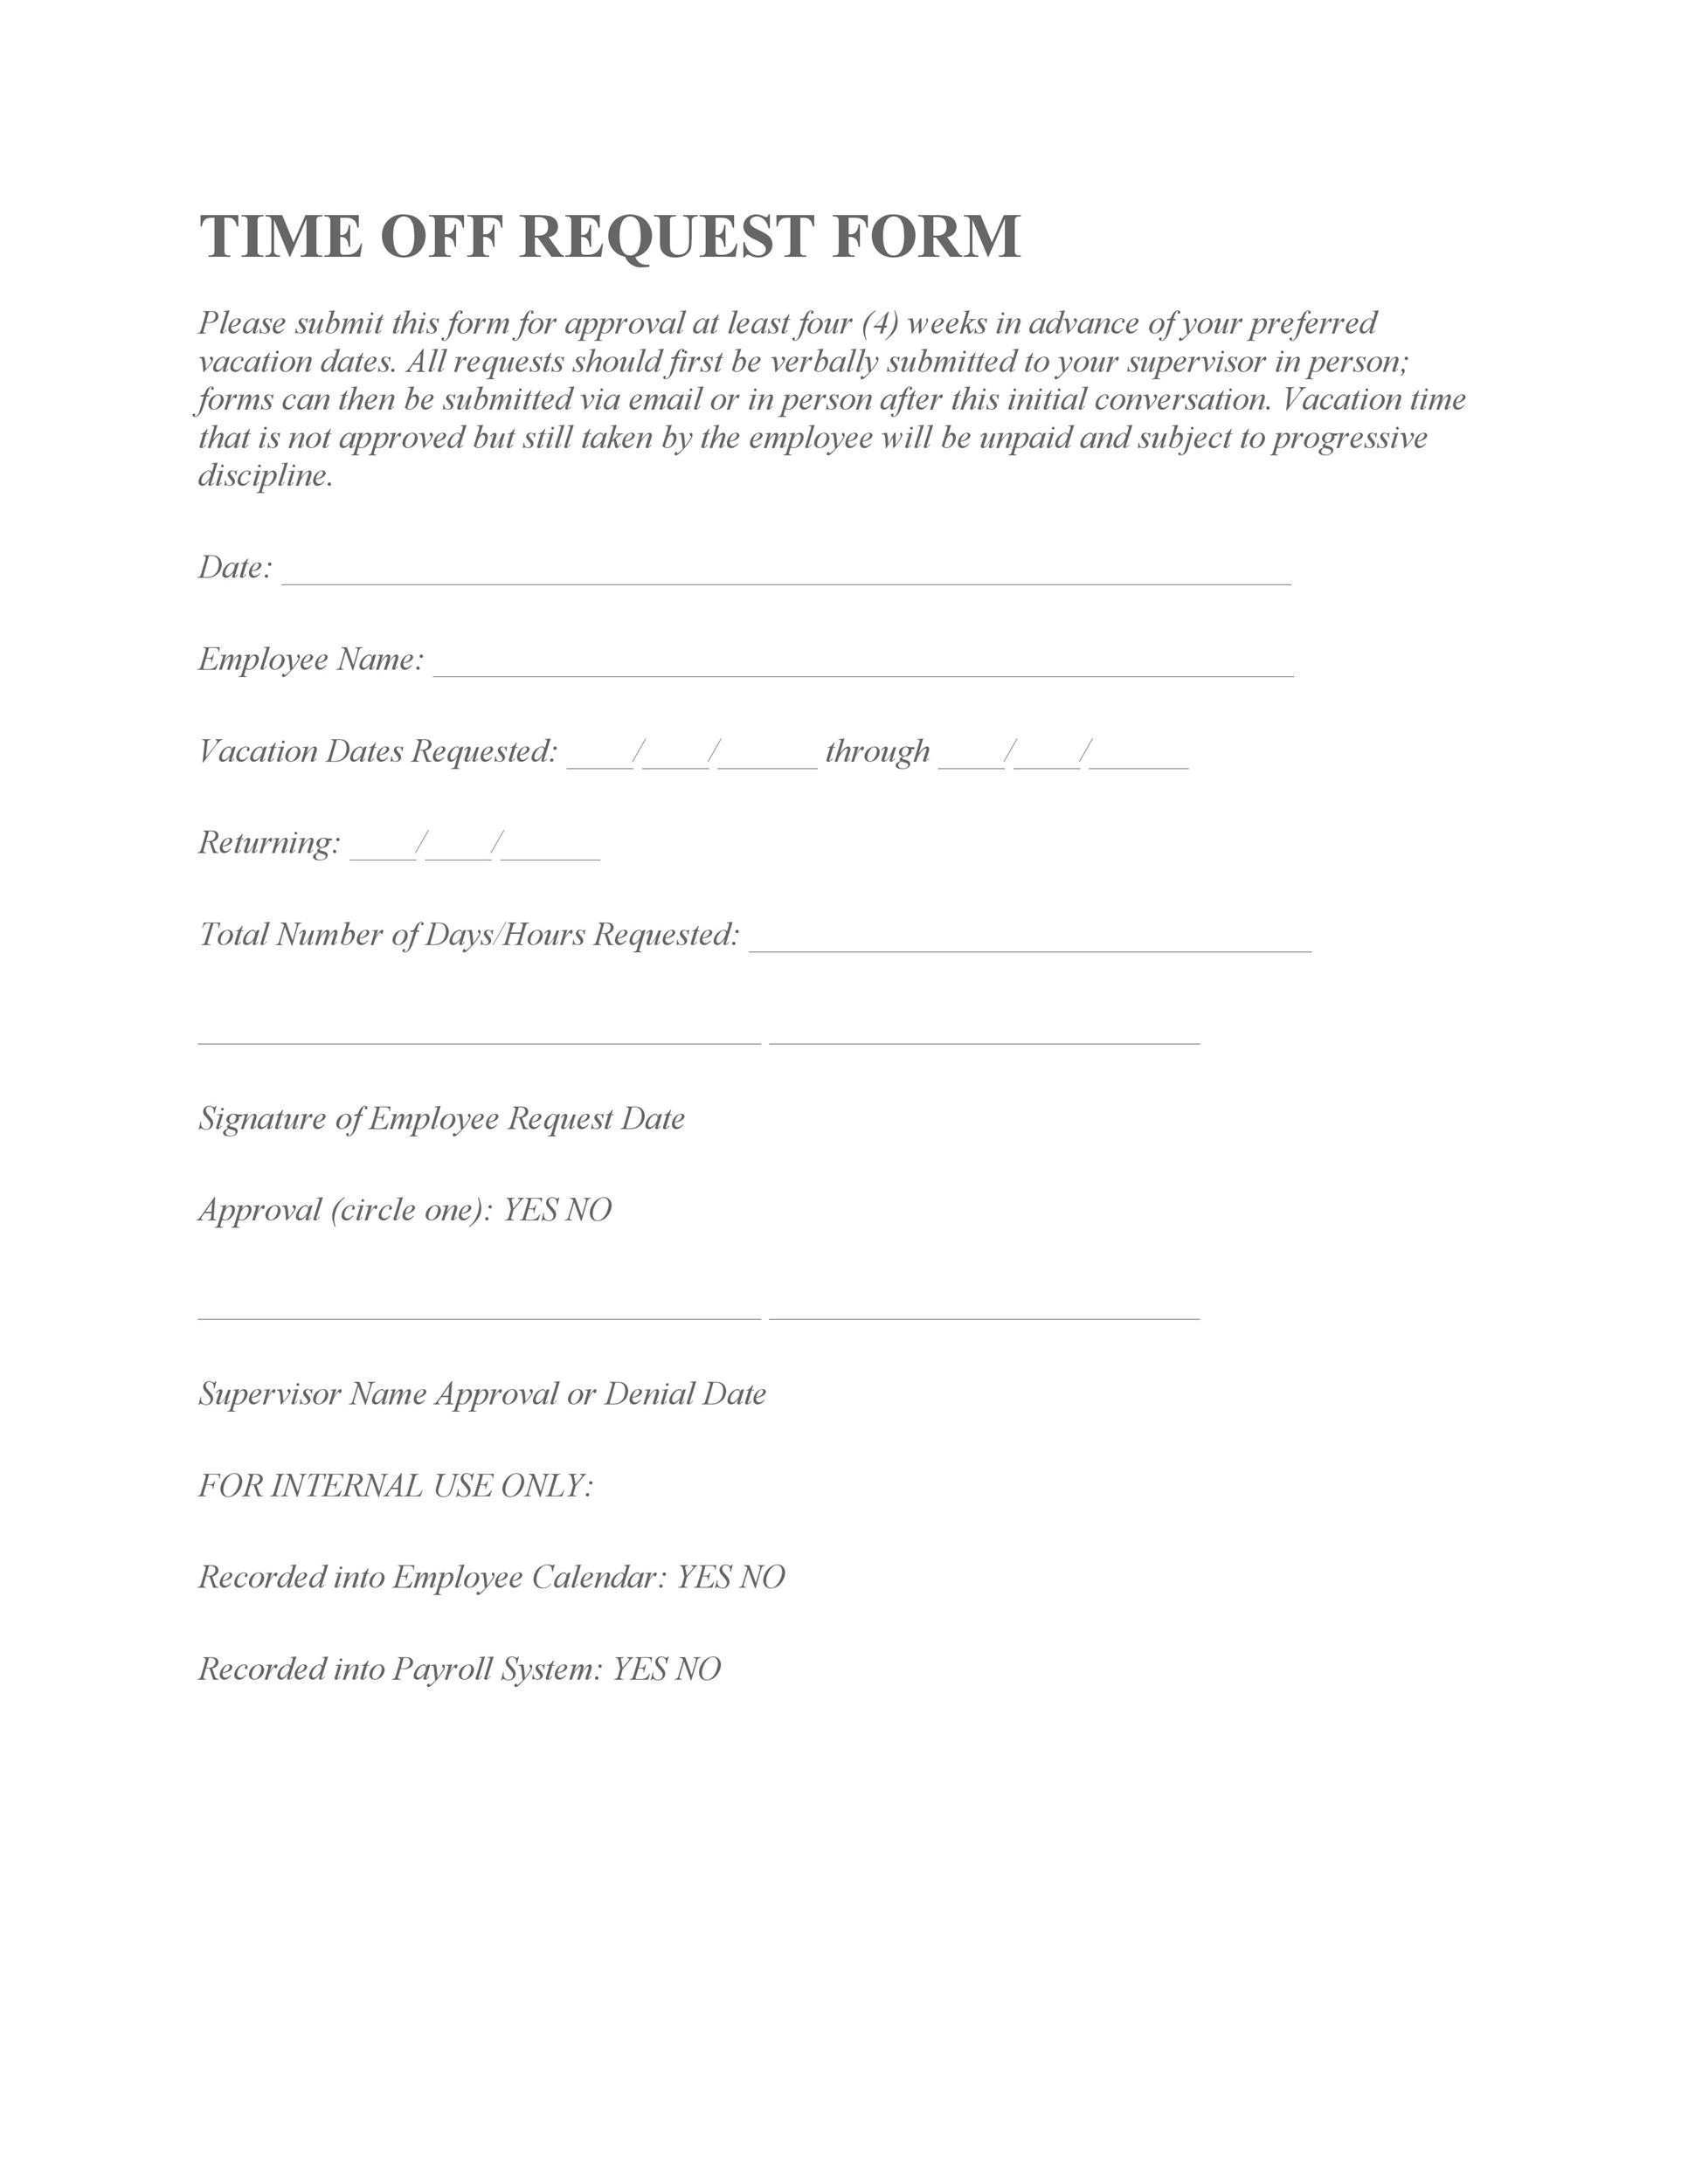 40 Effective Time Off Request Forms Templates Template Lab